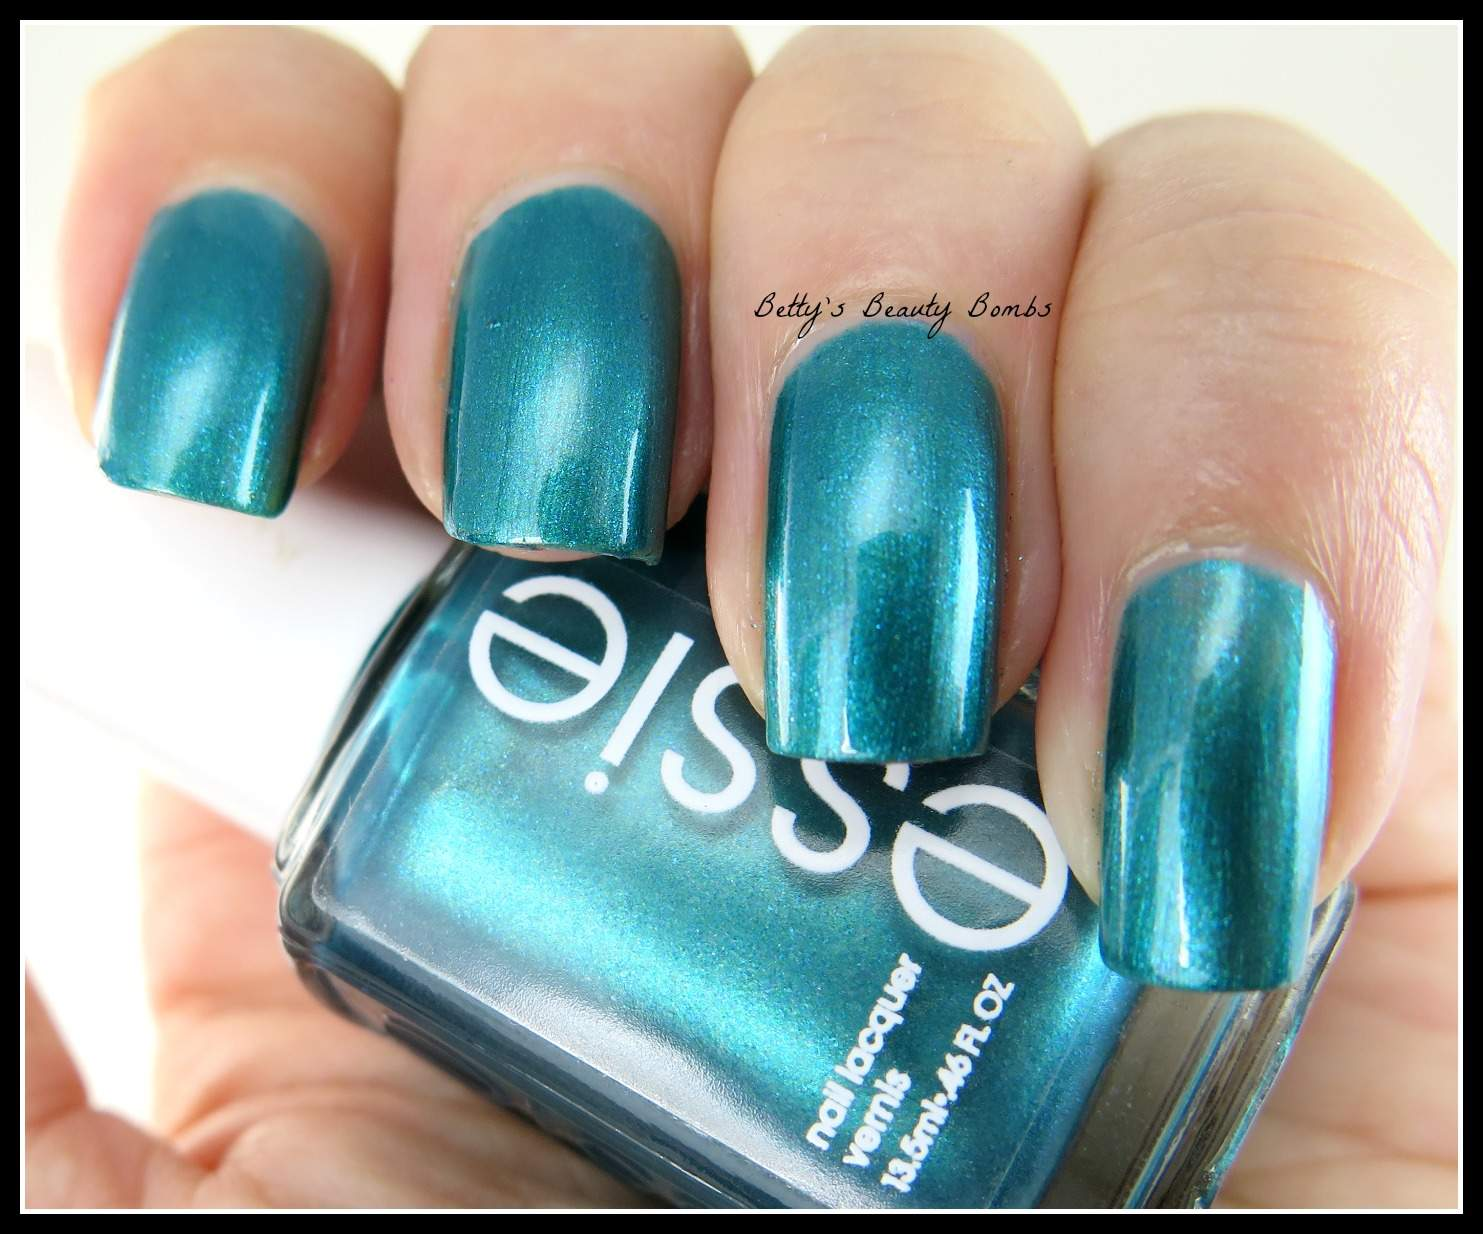 Essie Trophy Wife and Essie Strut Your Stuff Swatches - Lazy Betty